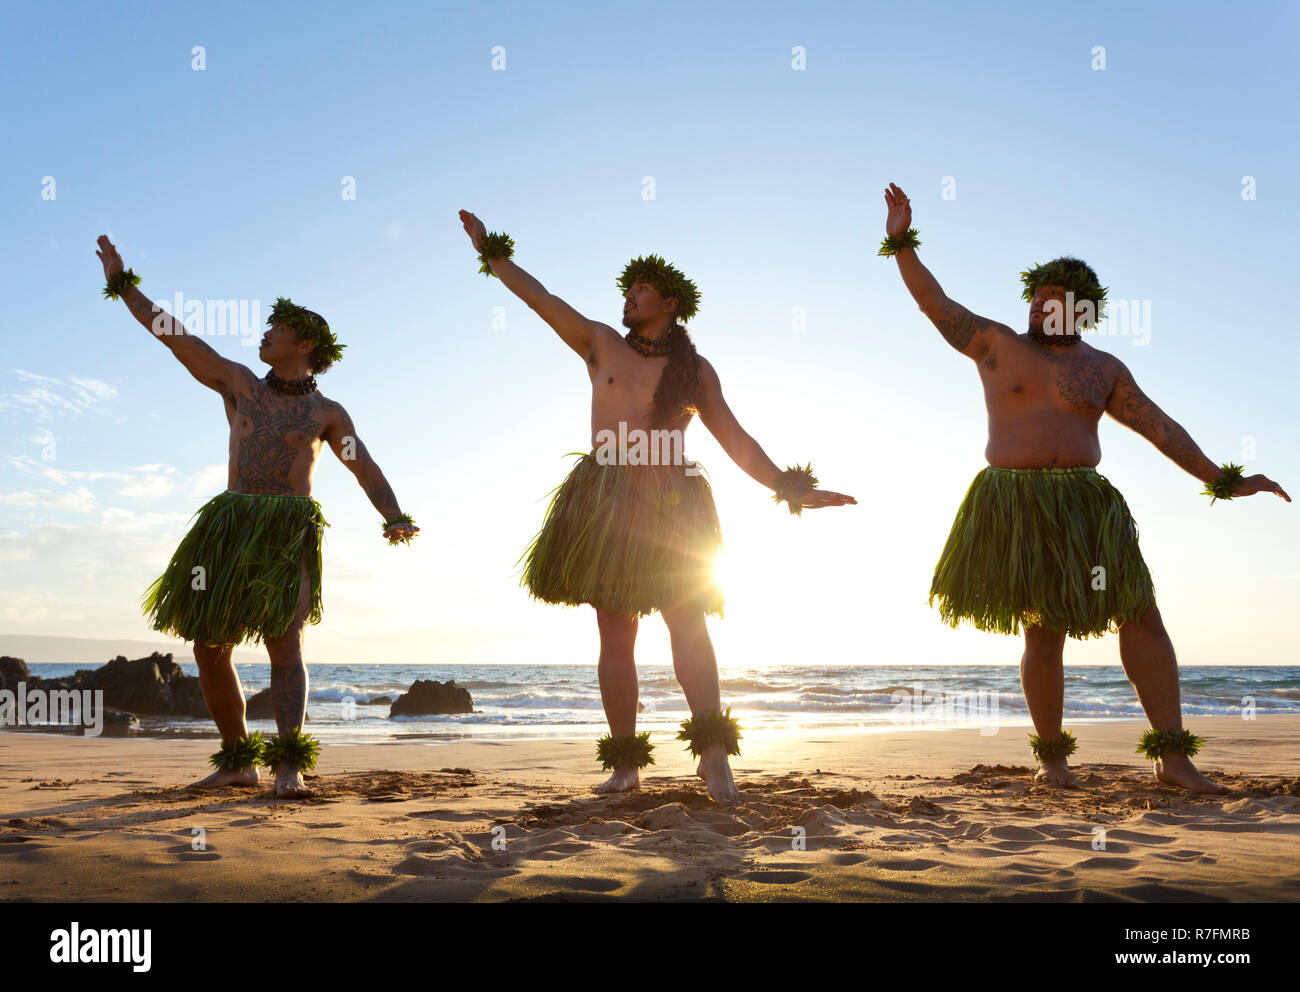 Three male hula dancers at sunset at Maui, Hawaii. - Stock Image